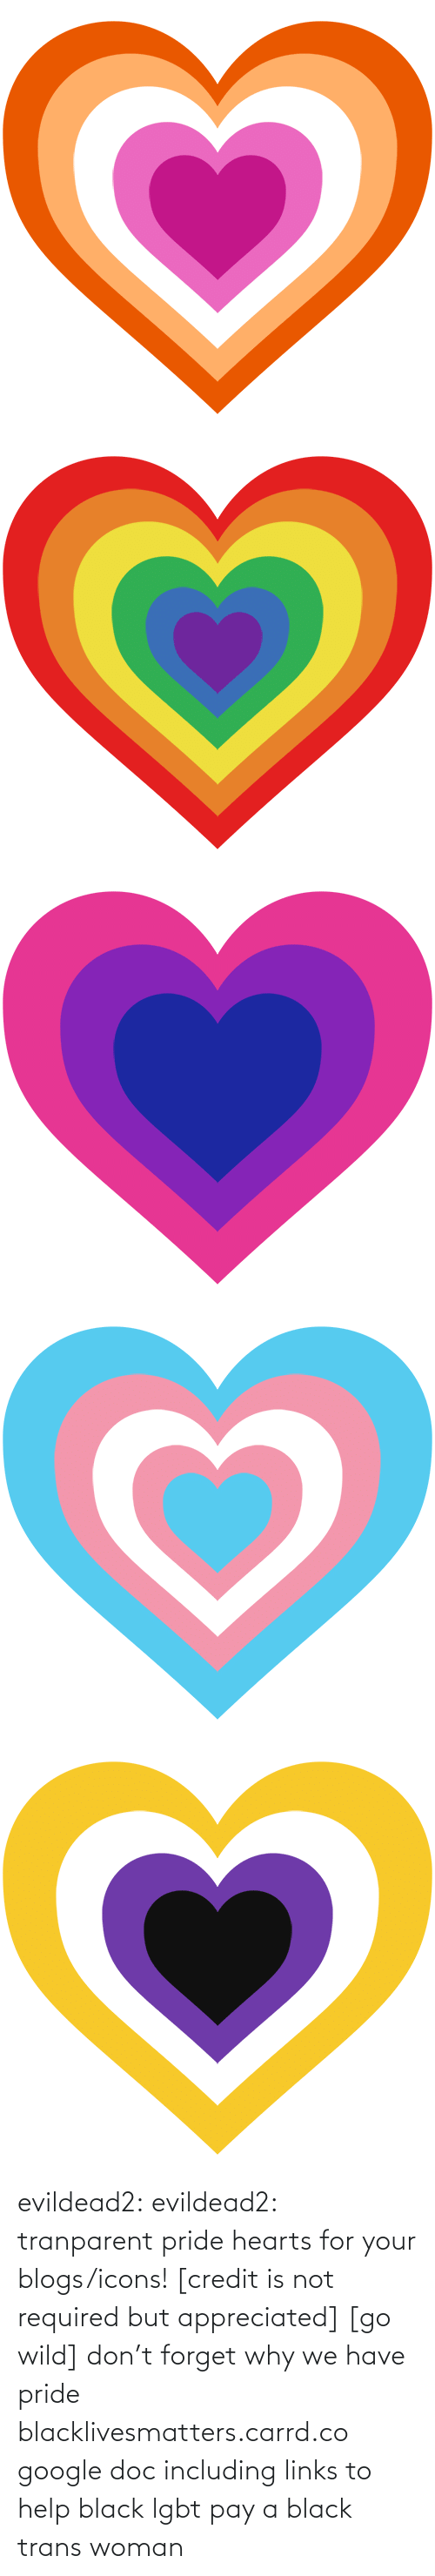 Google: evildead2:  evildead2:  tranparent pride hearts for your blogs/icons! [credit is not required but appreciated] [go wild]      don't forget why we have pride  blacklivesmatters.carrd.co  google doc including links to help black lgbt pay a black trans woman